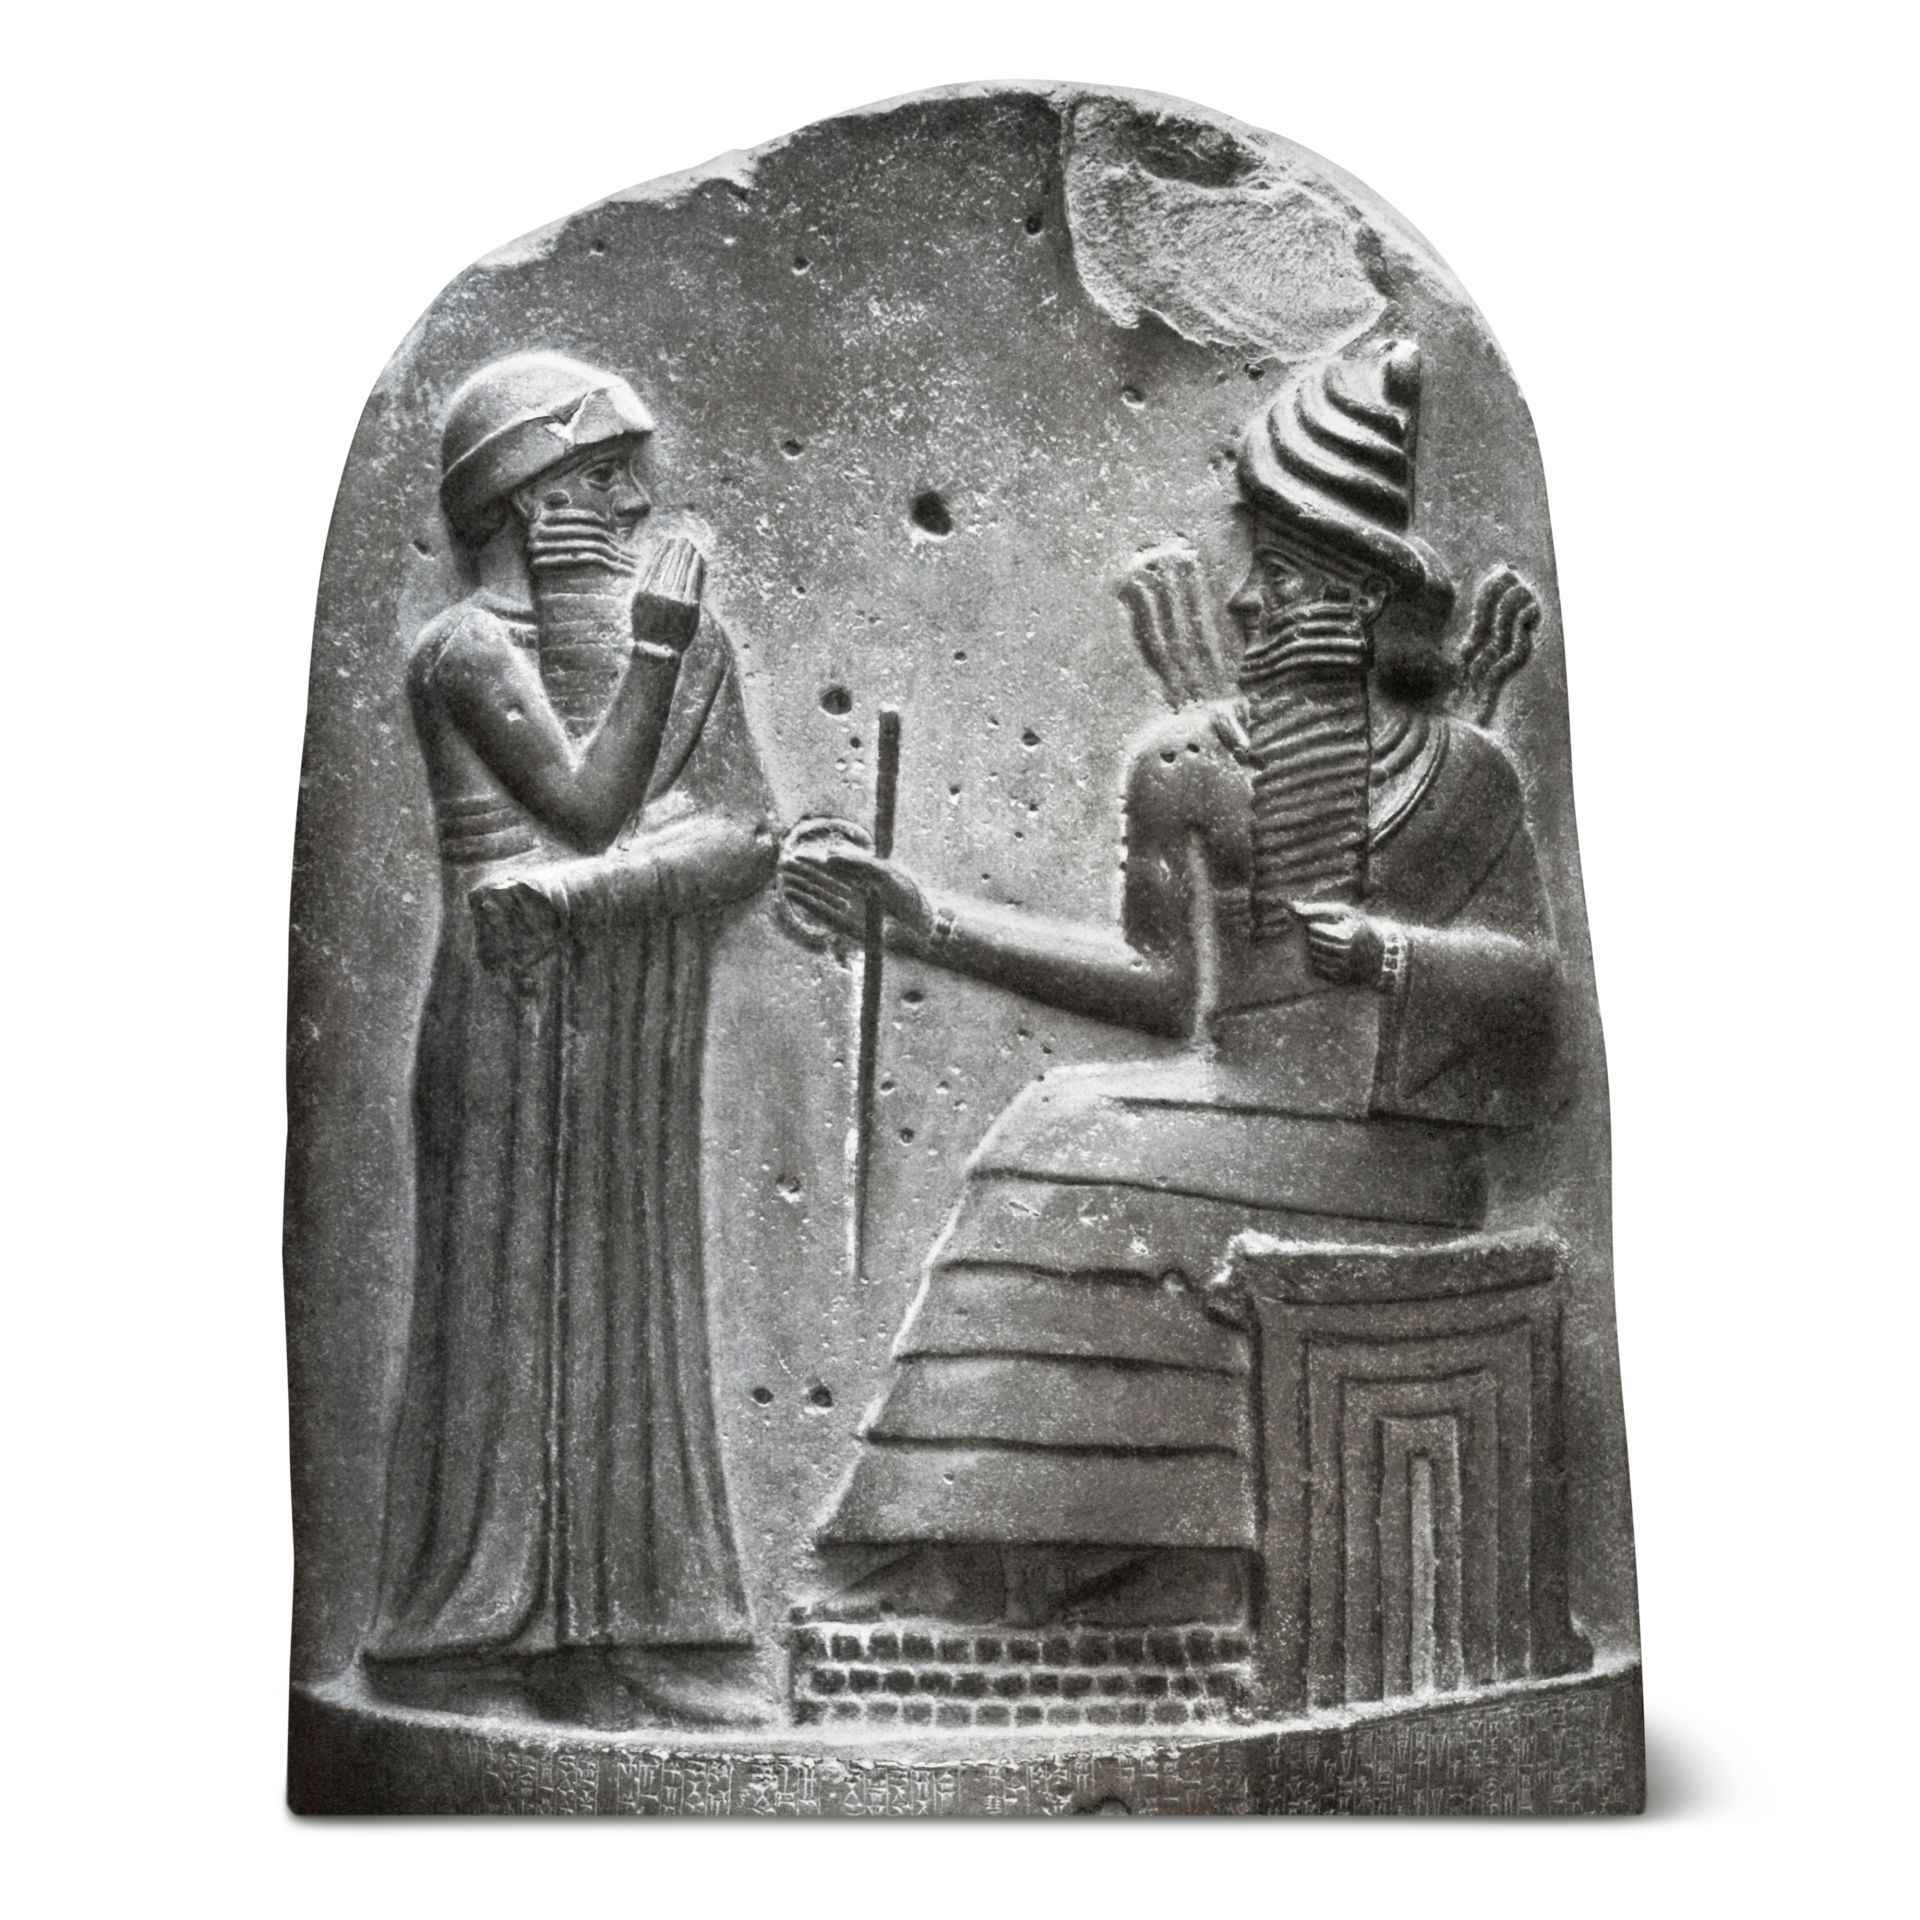 an analysis of the code of hammurabi in babylonian history Hunter allen code of hammurabi 10/15/13 the code of hammurabi was a set of laws created to maintain order in society in ancient babylon however it can be.